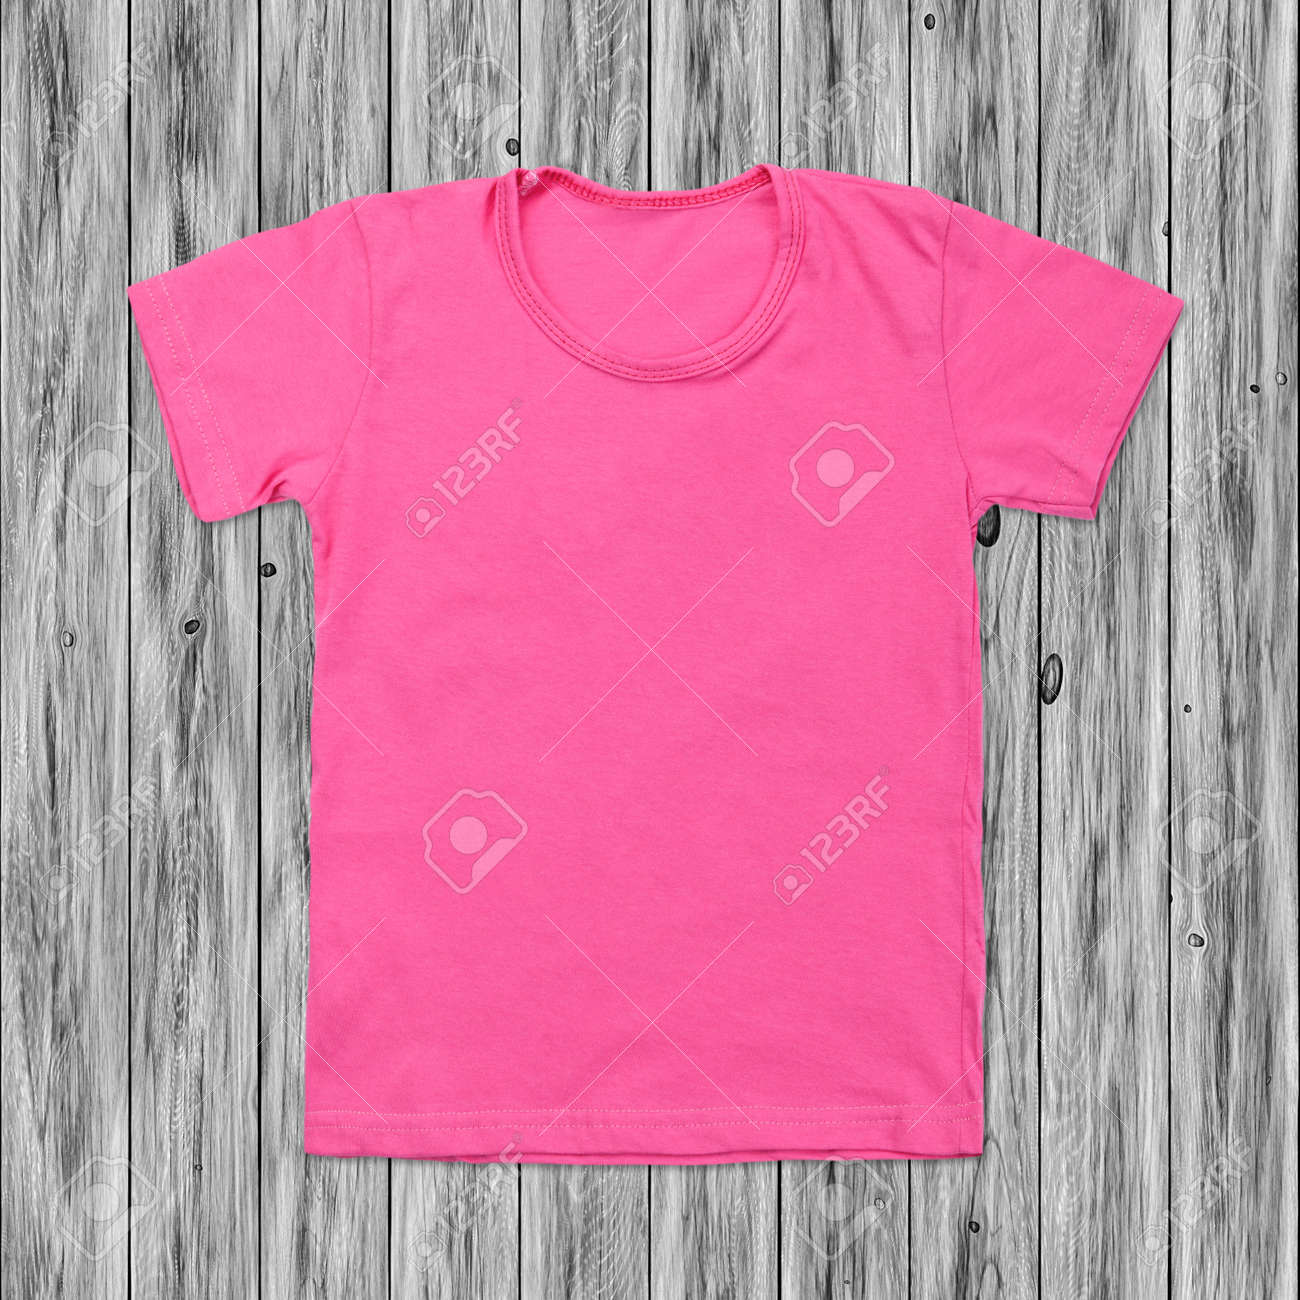 8482b408 Pink Blank T-shirt On Dark Wood Background. Stock Photo, Picture And ...